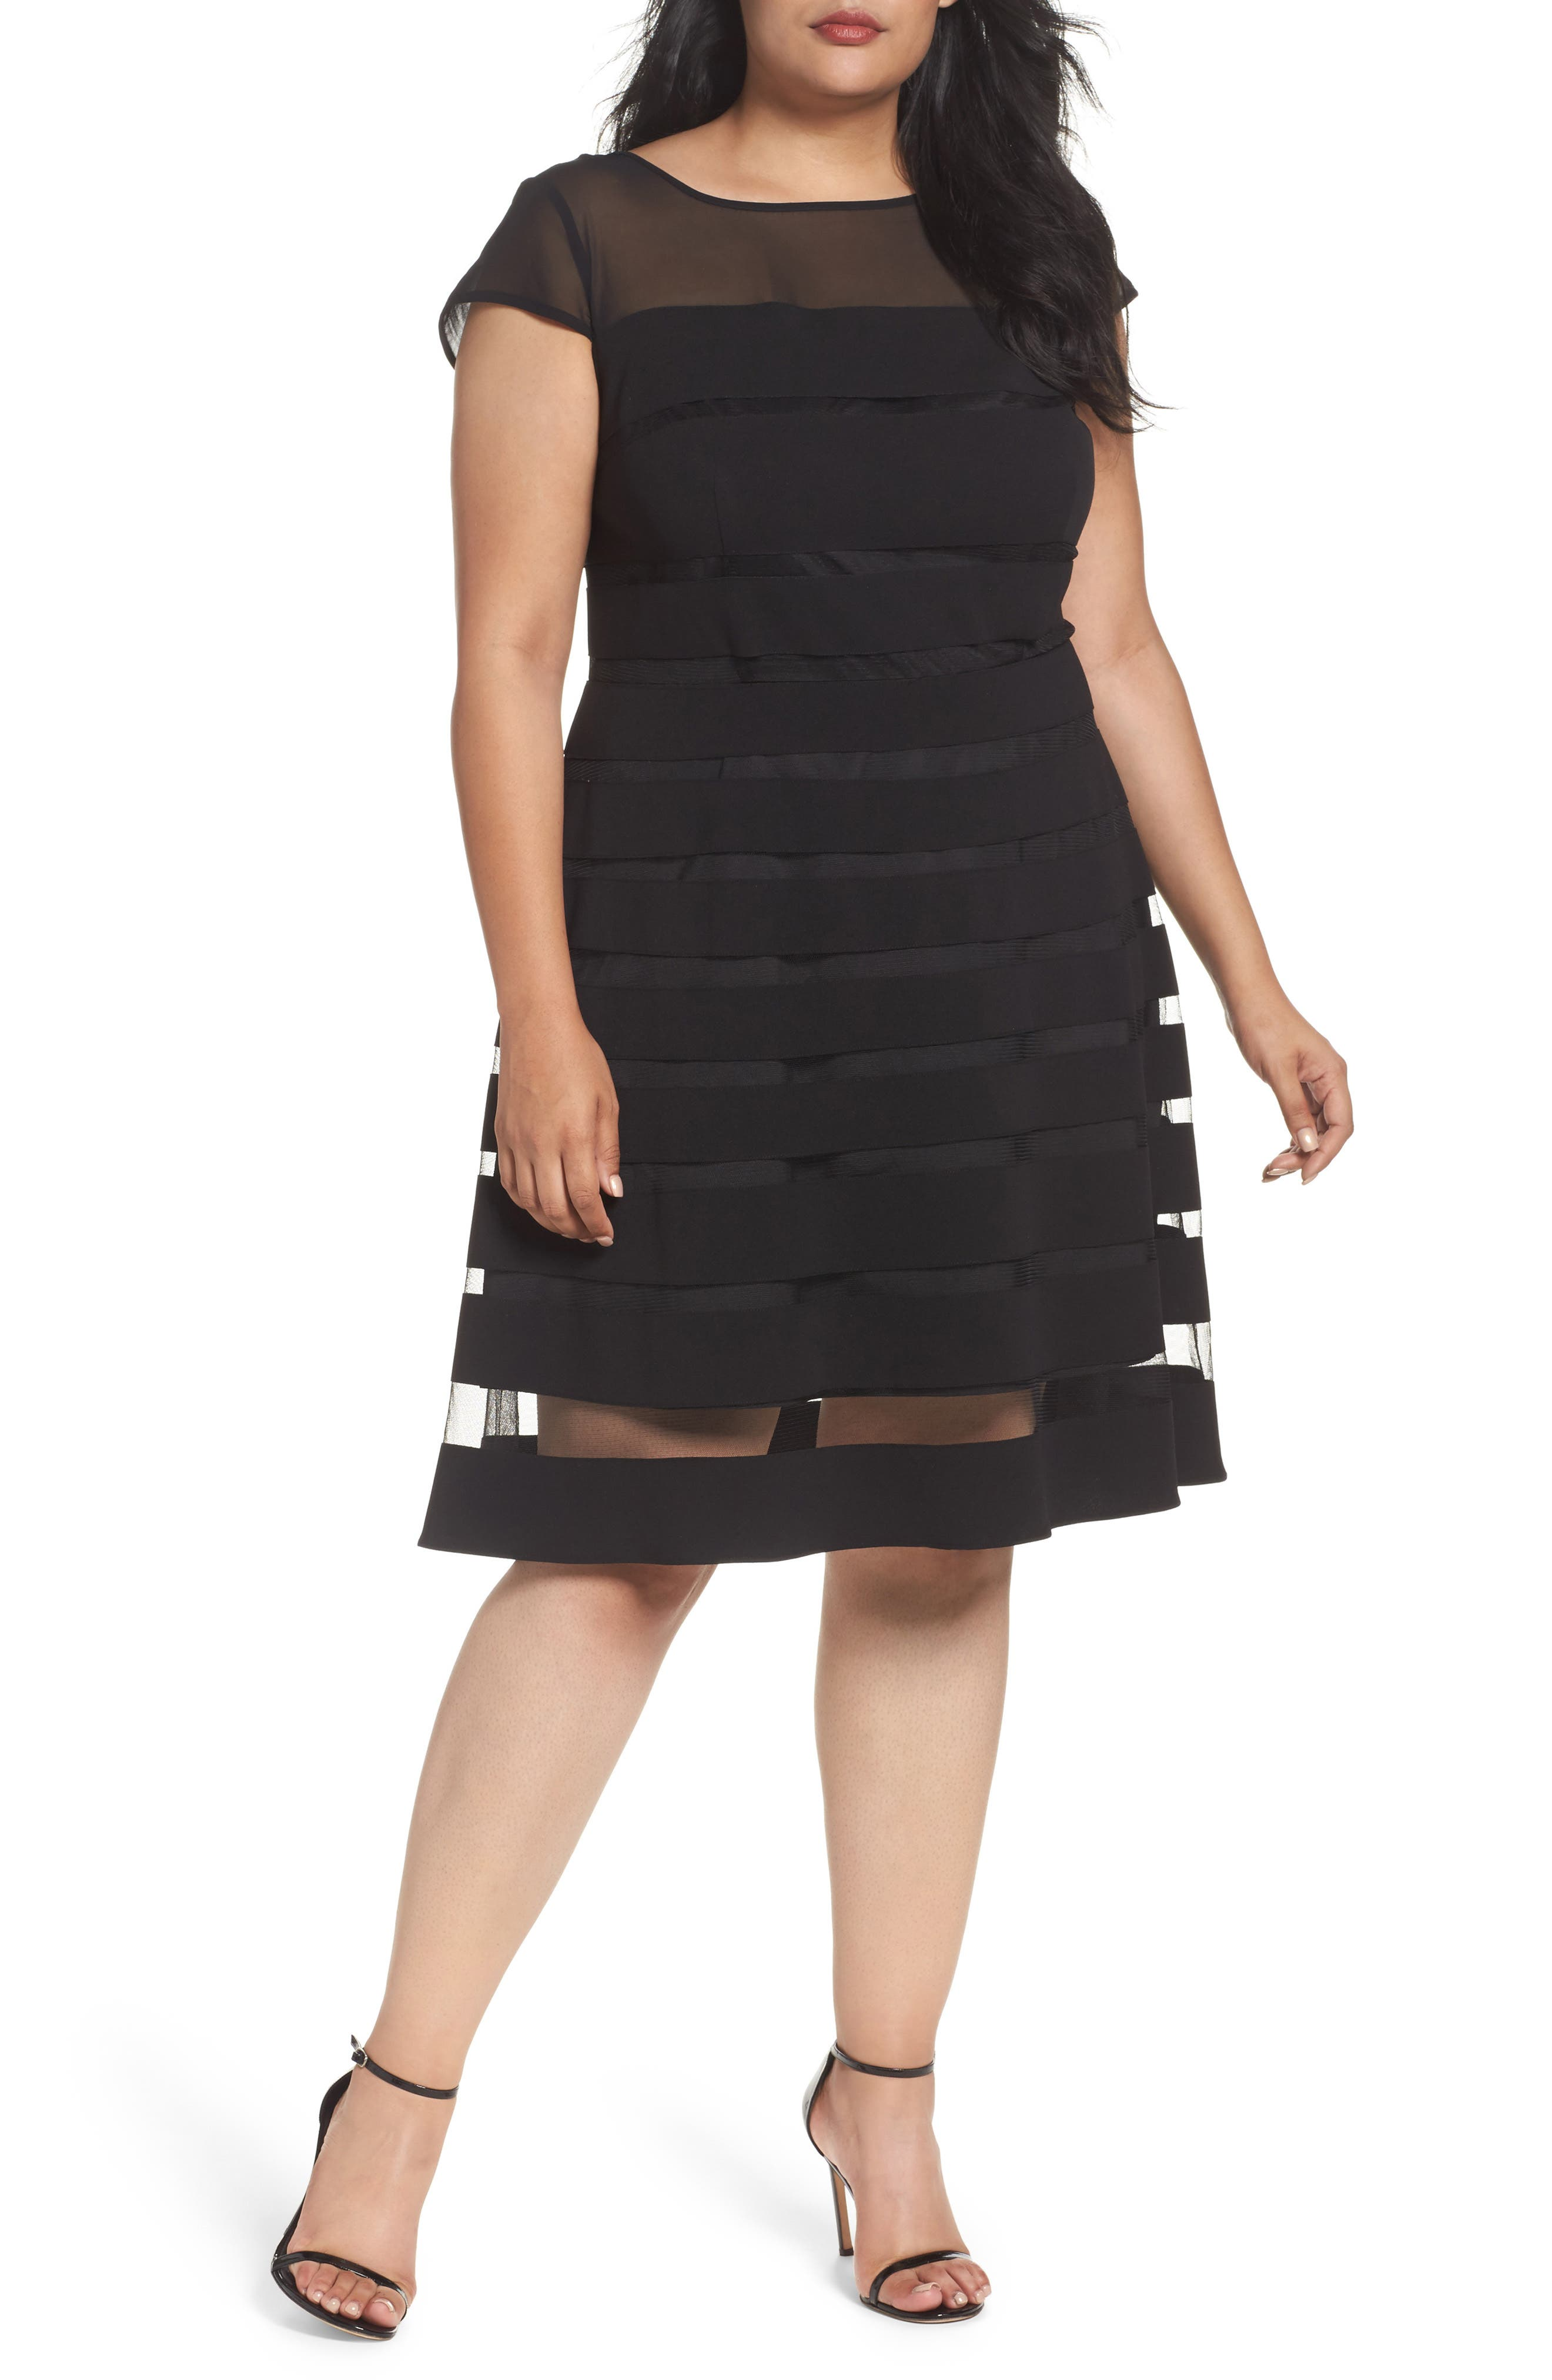 Adrianna Papell Chiffon Inset Fit & Flare Dress (Plus Size)